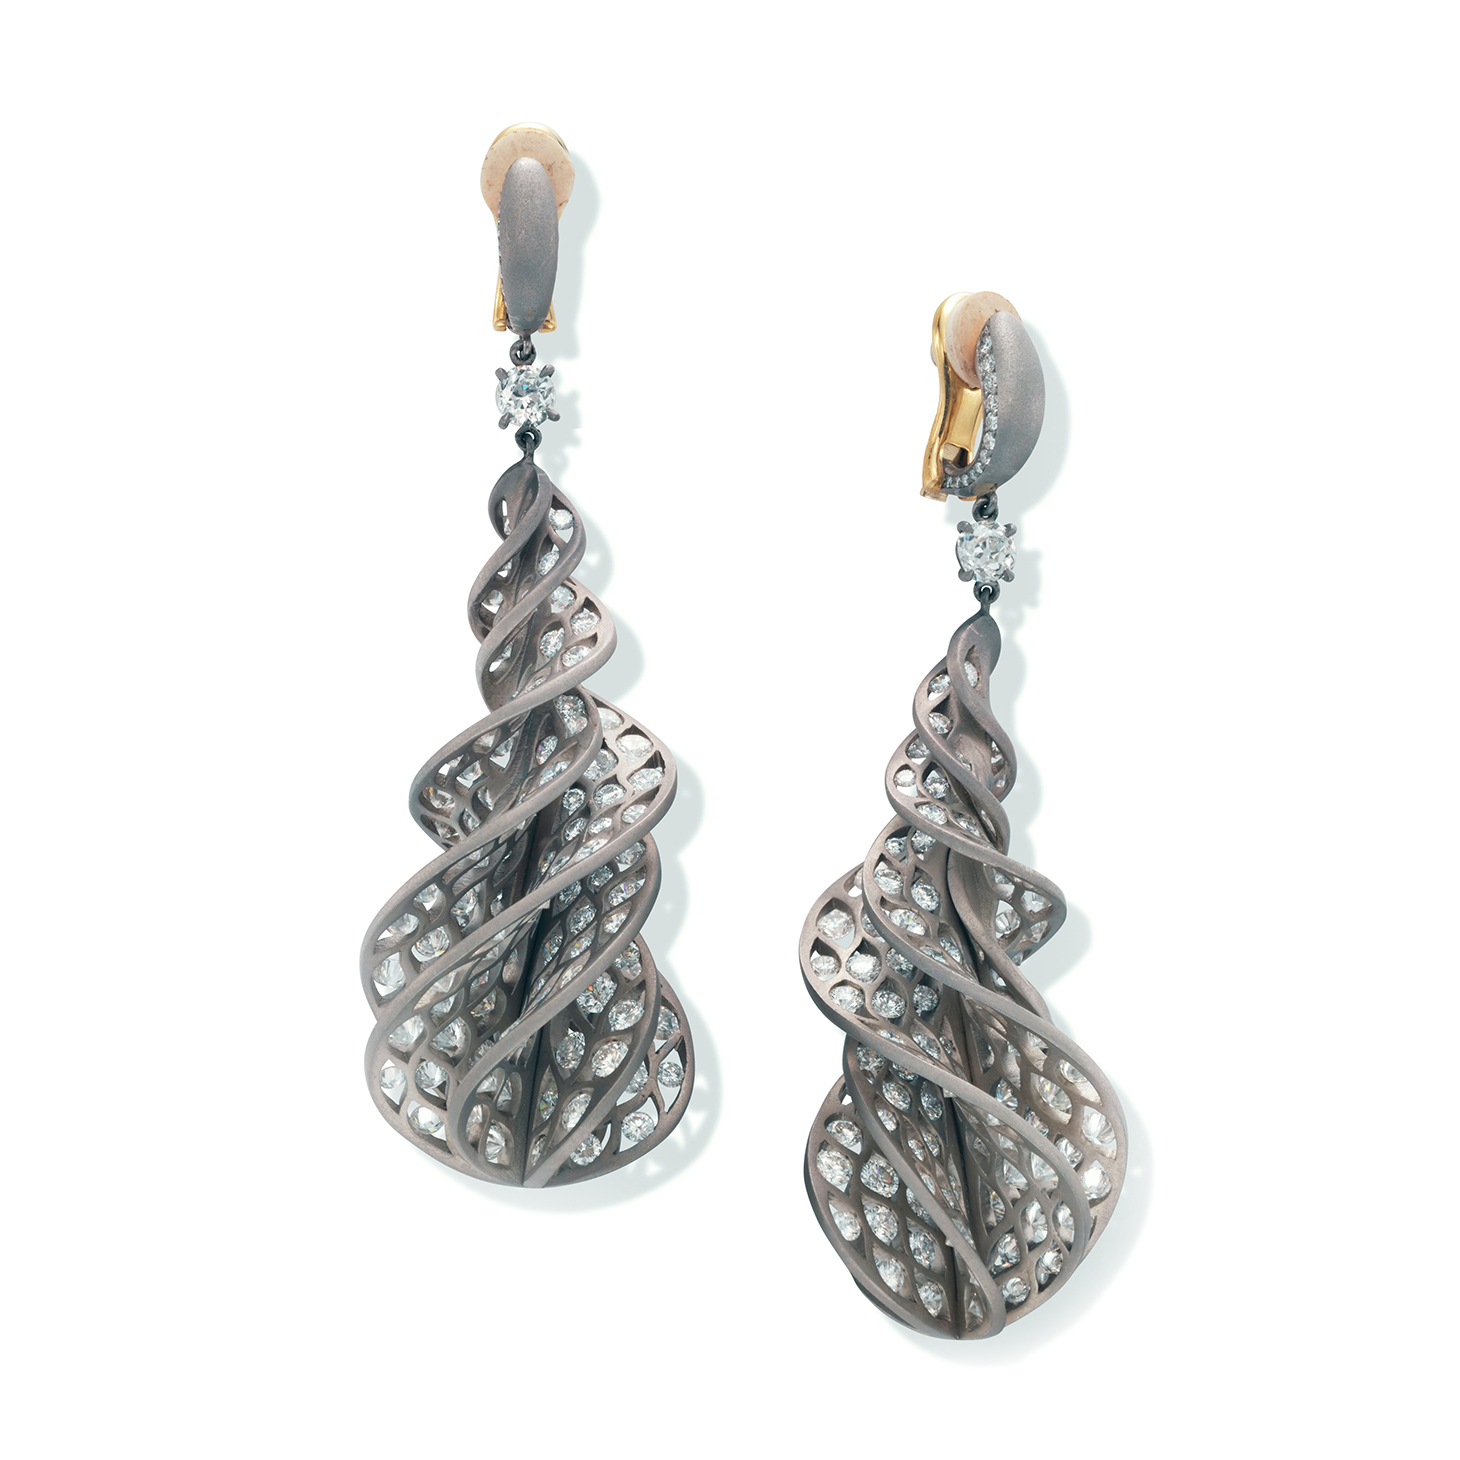 A Pair of Diamond and Titanium 'Twist' Ear Pendants, by SABBA